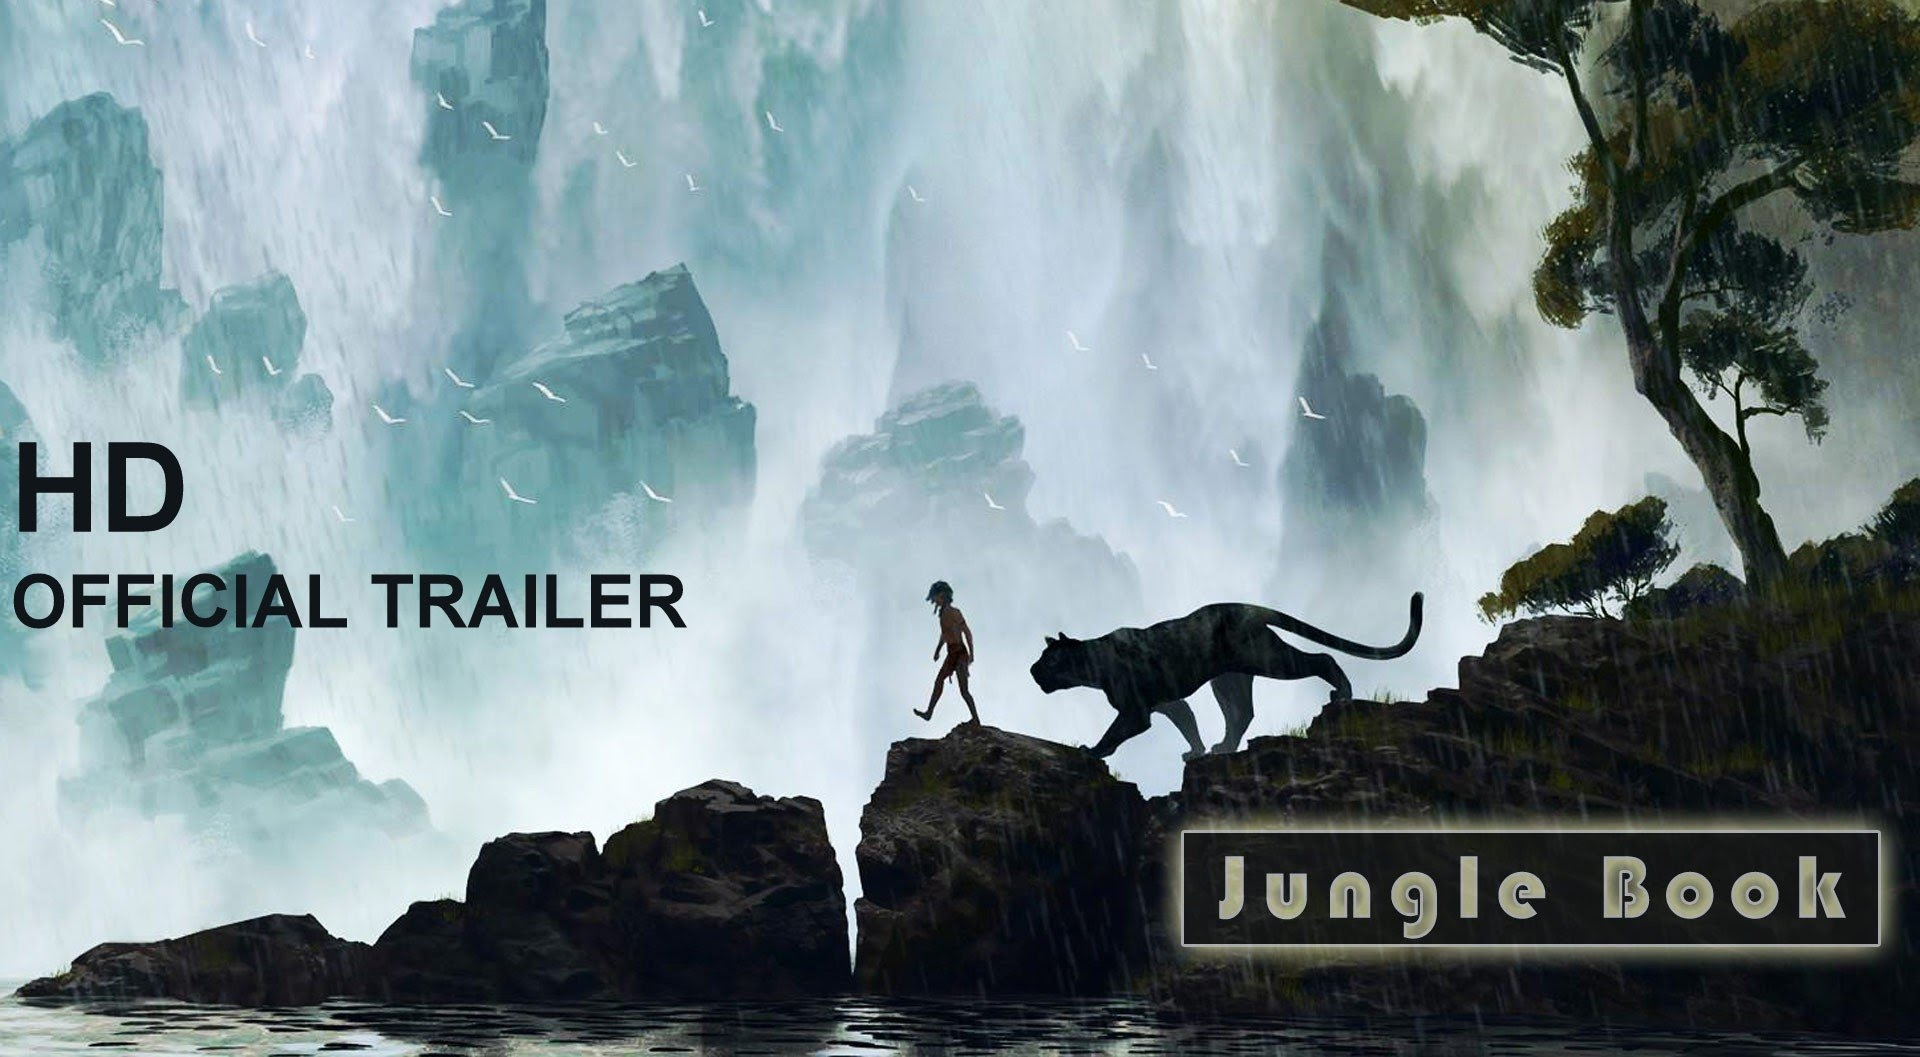 Disney Releases Hollywood Jungle Book Movie Official Trailer